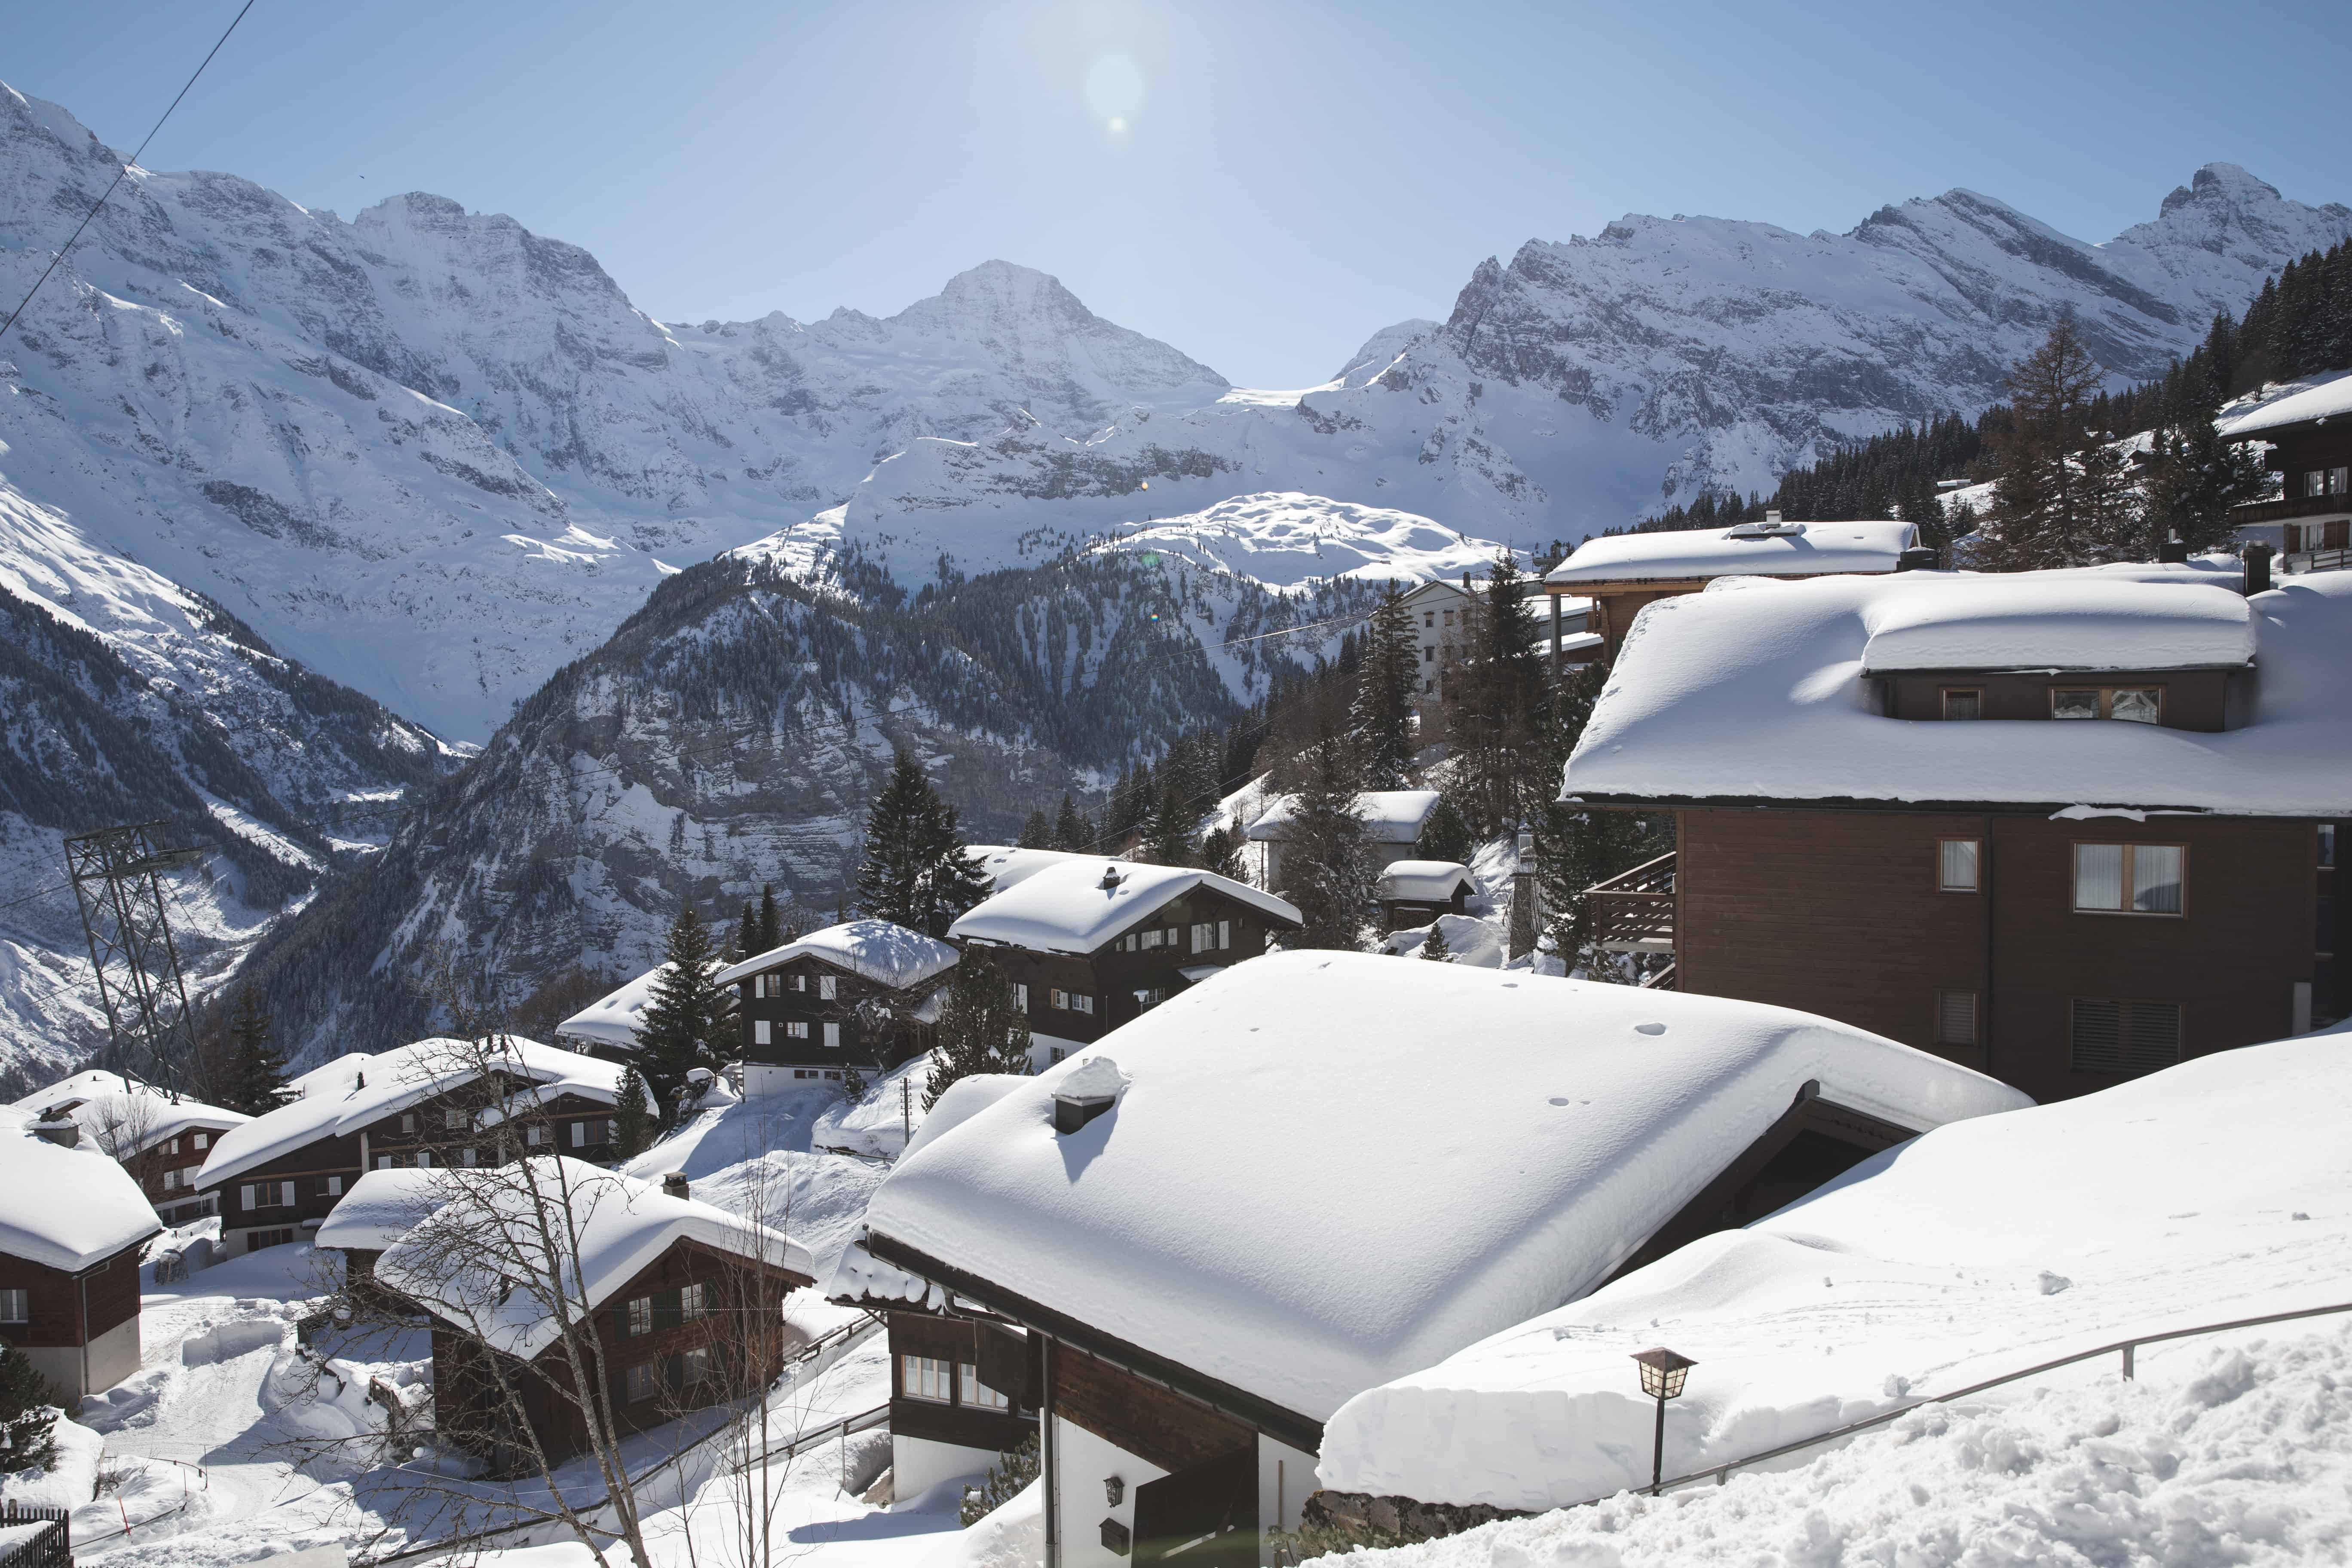 Mürren is a quintessential Swiss Alps ski town, and is full of large mountains and ski chalets - worth a visit in February!